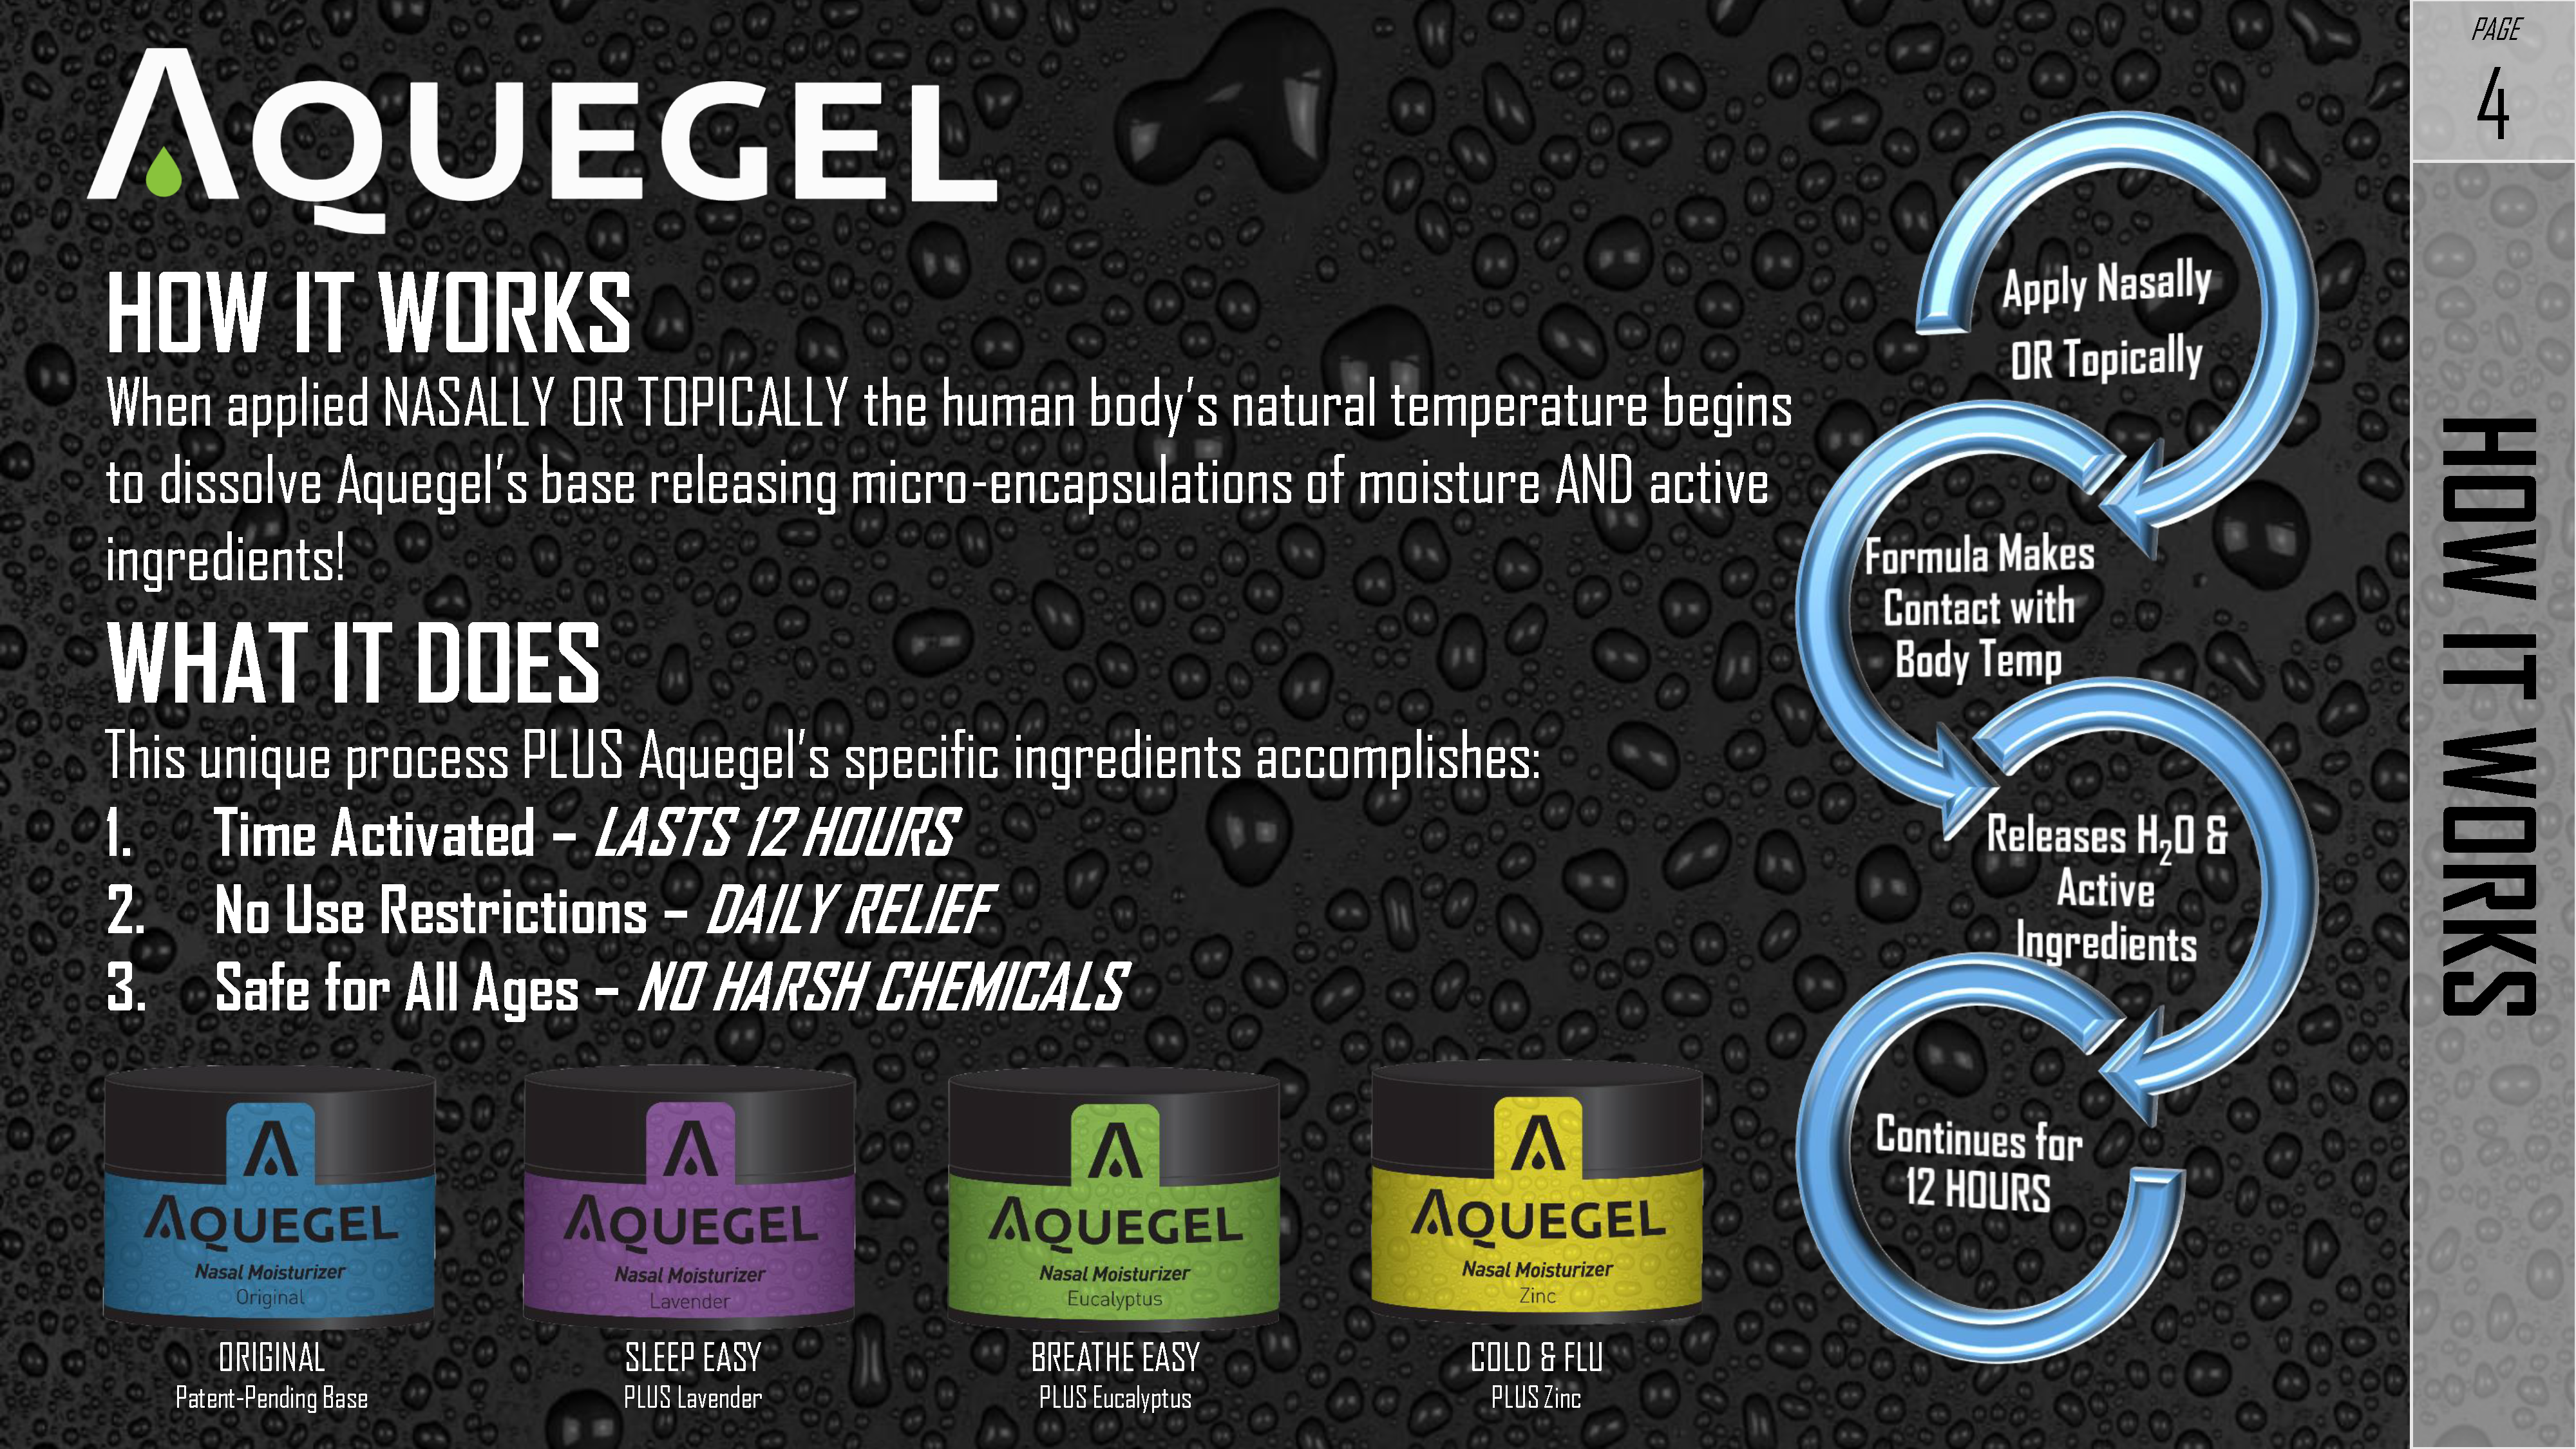 HOW AQUEGEL WORKS - 4